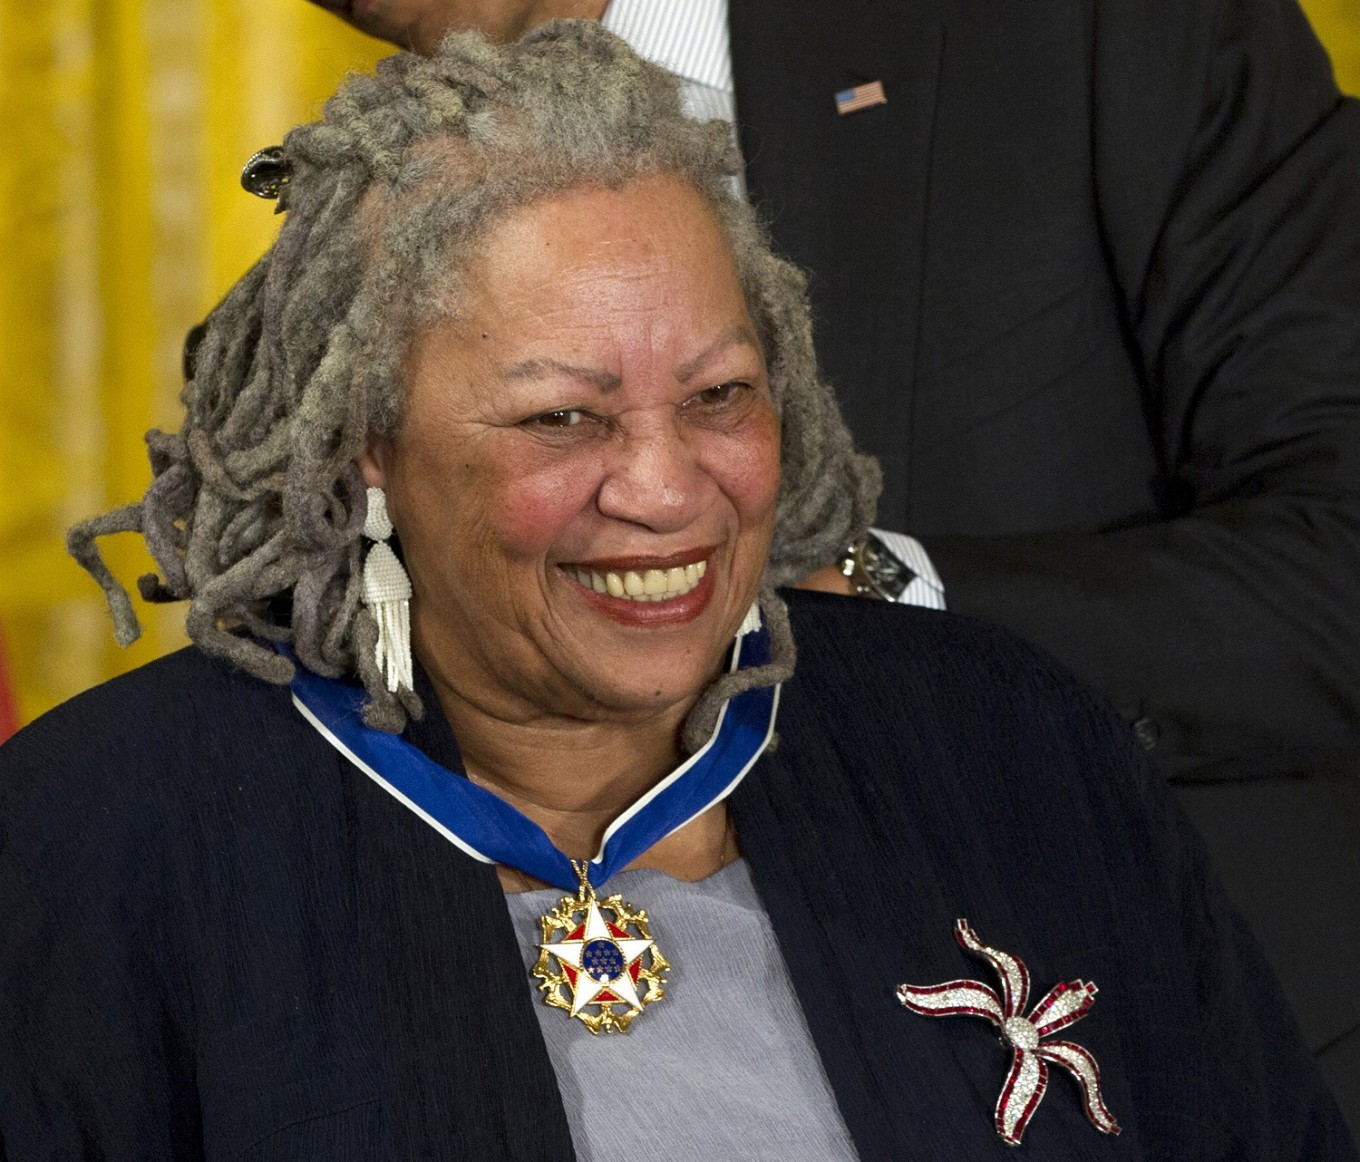 strangers by toni morrison essay Browse and read toni morrison strangers essay toni morrison strangers essay that's it, a book to wait for in this month even you have wanted for long time for.